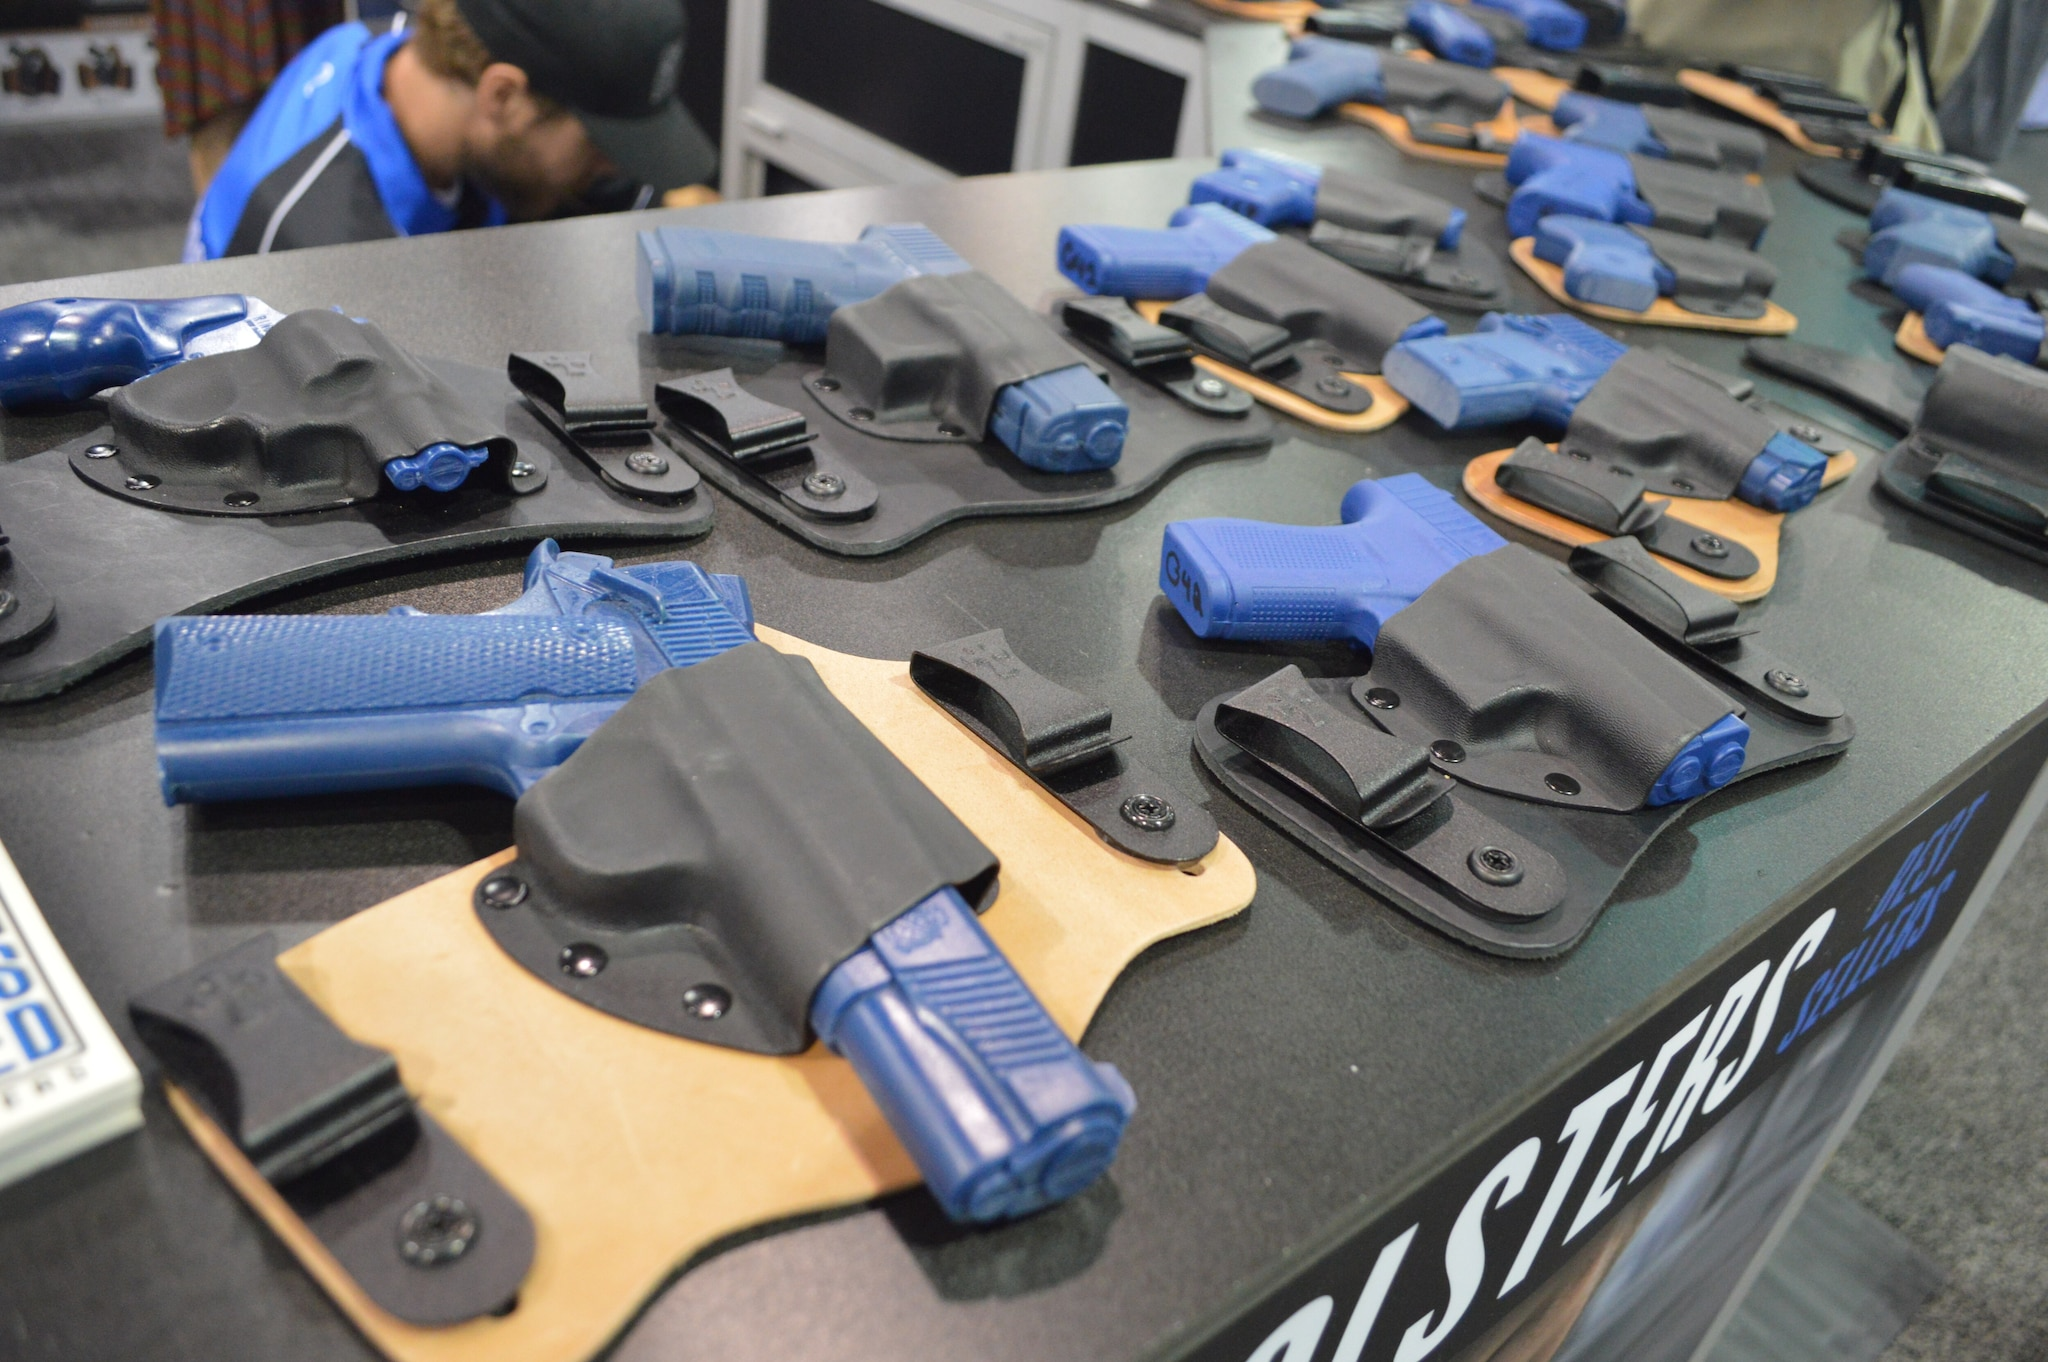 CrossBreed Holsters on display at the Carry Guard Expo. CrossBreed filled a large booth with all their concealment options, and they were a major sponsor of the fashion show as well. (Photo: Kristin Alberts/Guns.com)